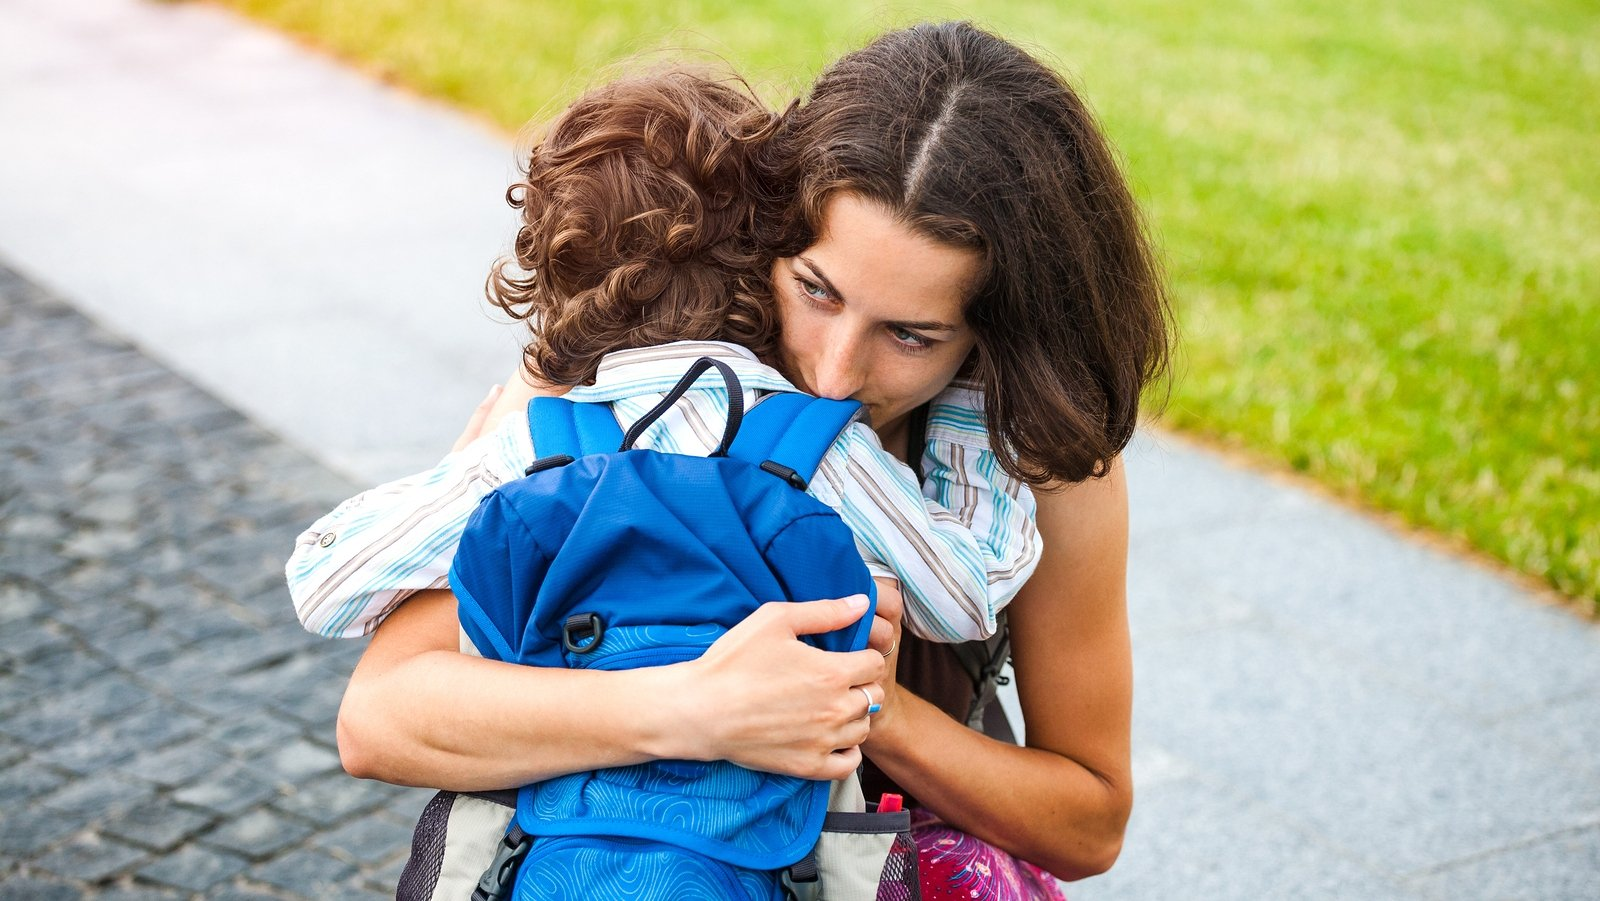 12 Effective Ways to Bully-Proof Your Child